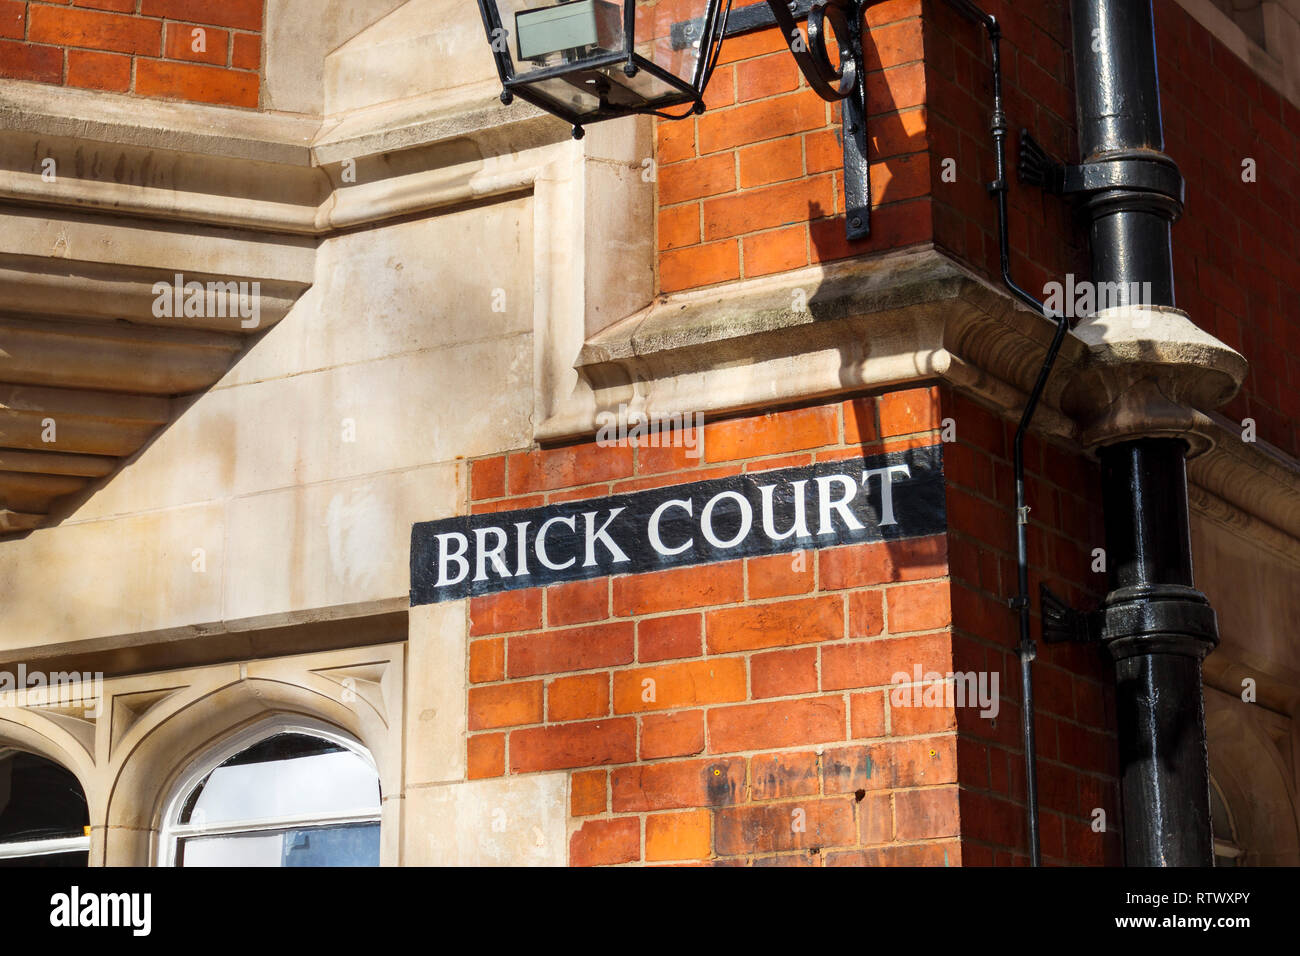 Inns of Court: Brick Court, home of a leading set of commercial litigation barristers chambers in Middle Temple Lane, 7-8 Essex St, Temple, London WC2 - Stock Image